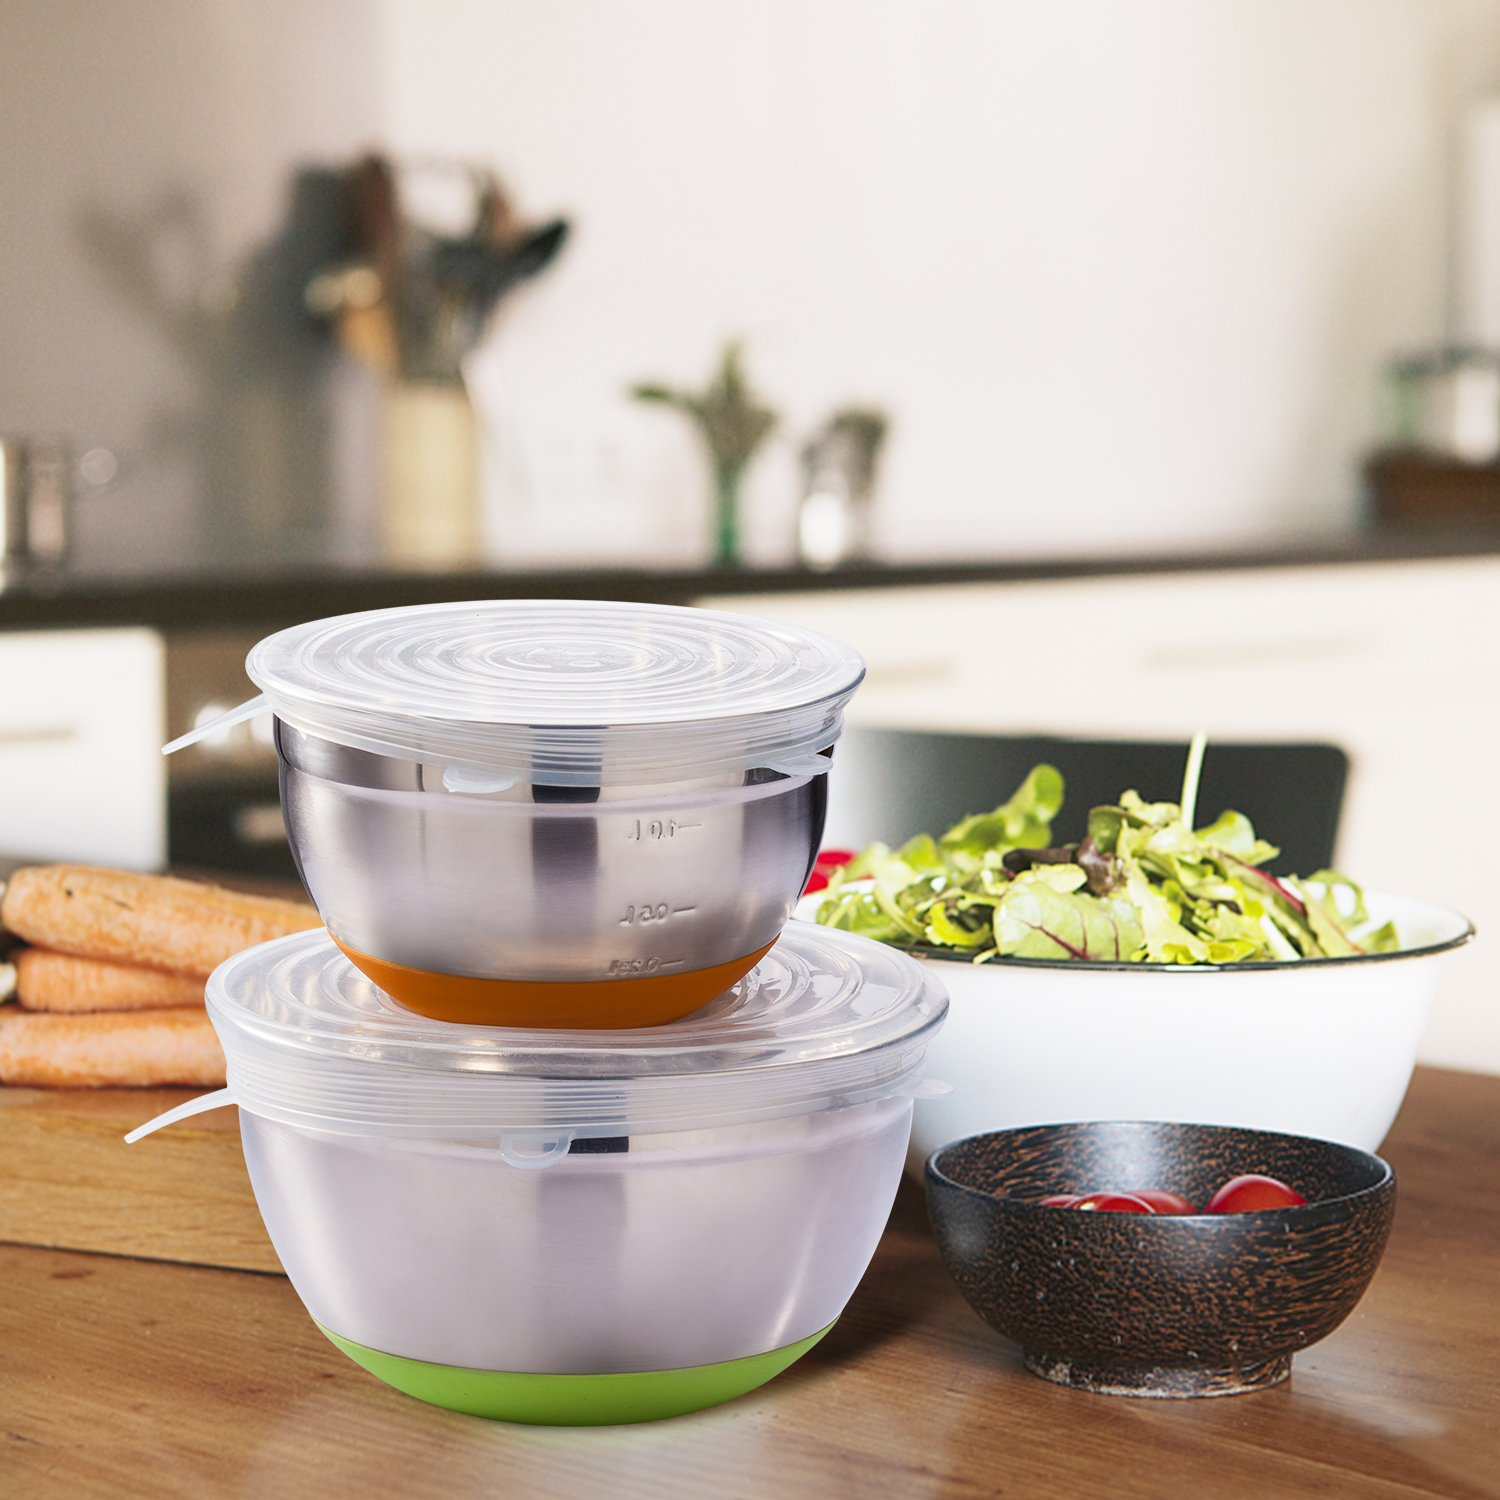 Silicone Stretch Lids, 6-Pack Various Sizes Cover for Bowl by i-Kawachi (Image #4)